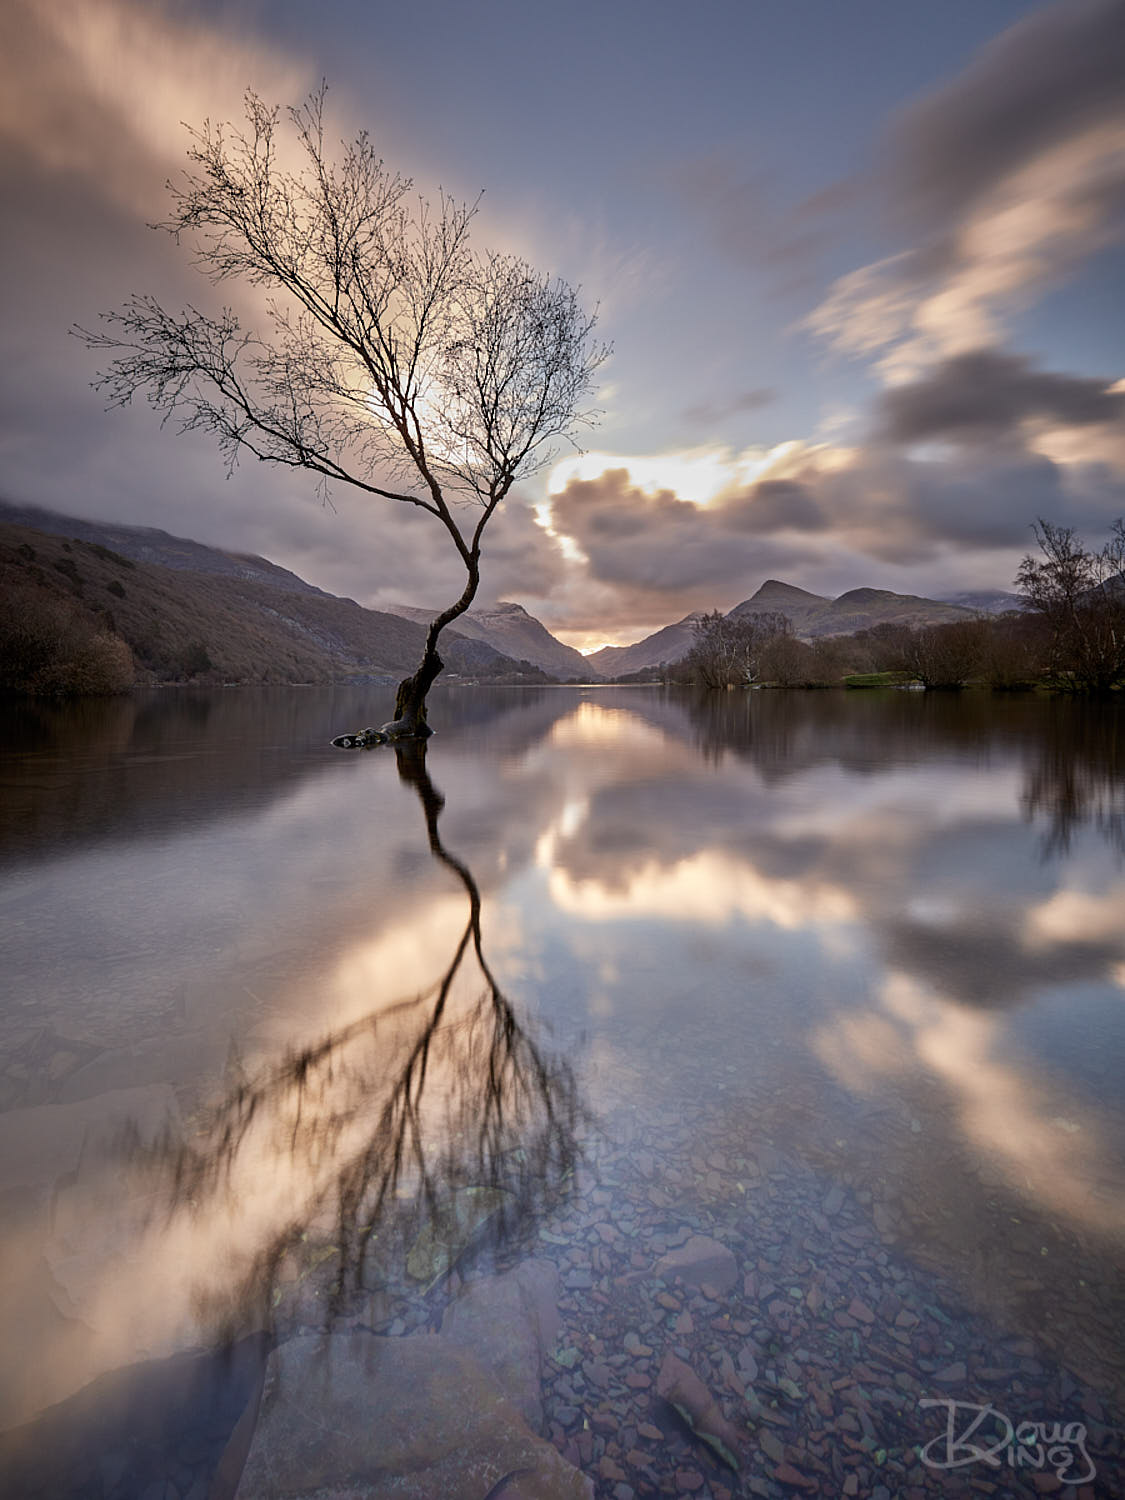 Photo for Sale - The Lonely Tree of Padarn